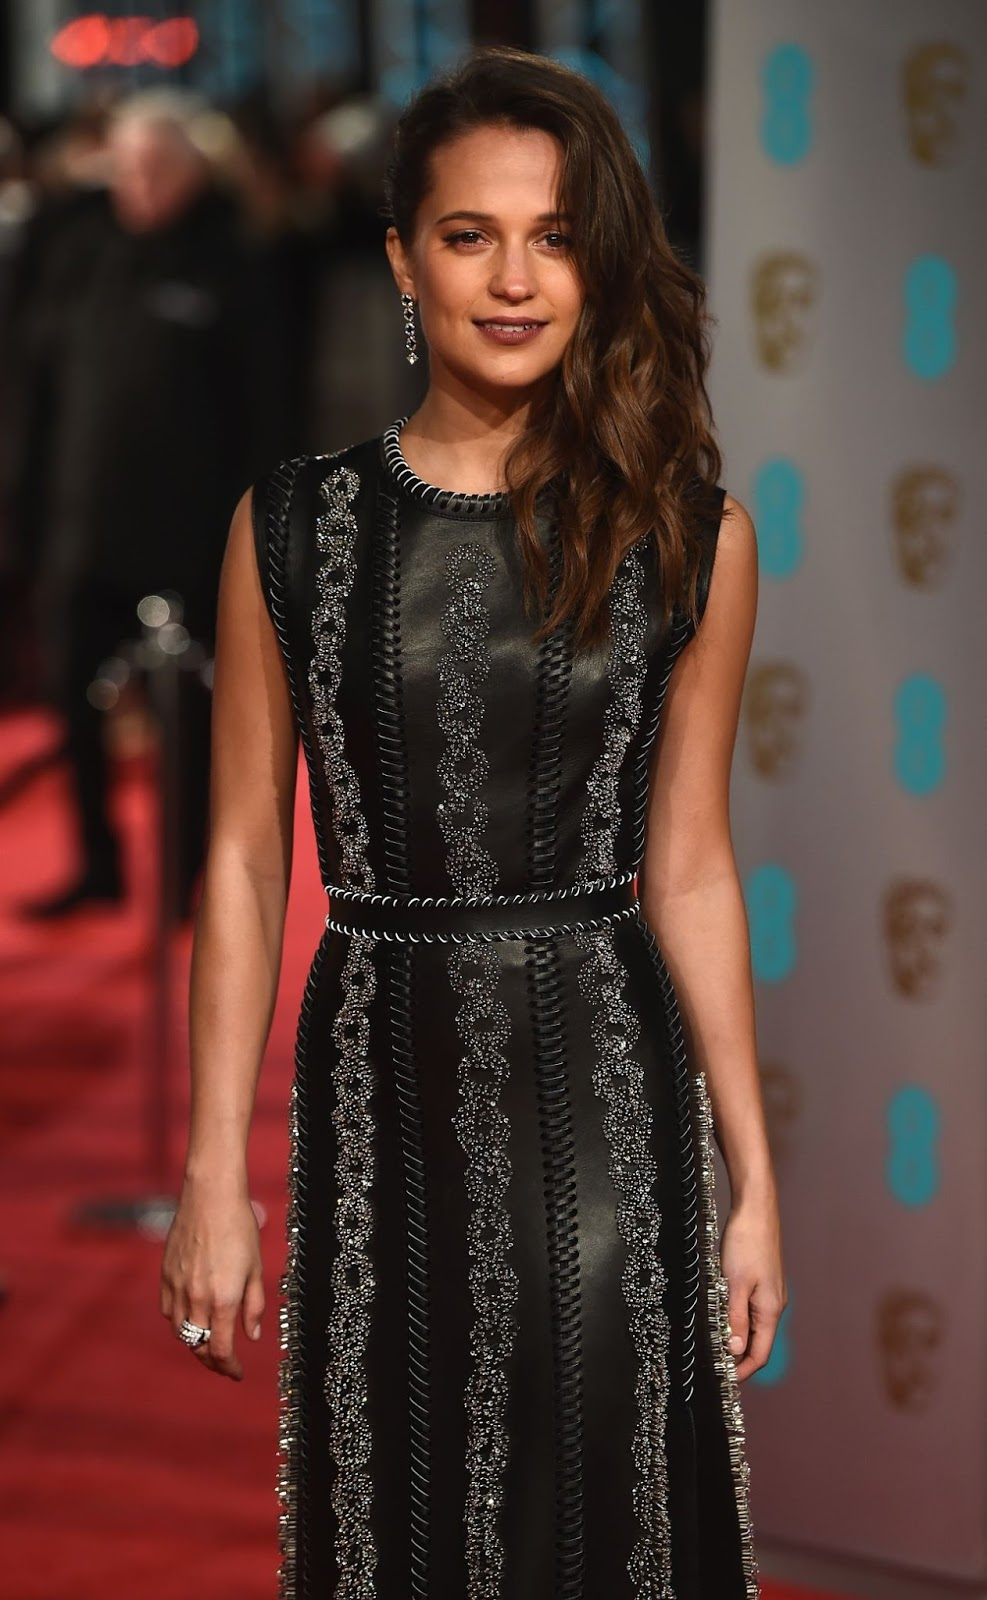 Alicia Vikander wears a leather dress to the BAFTAs 2016